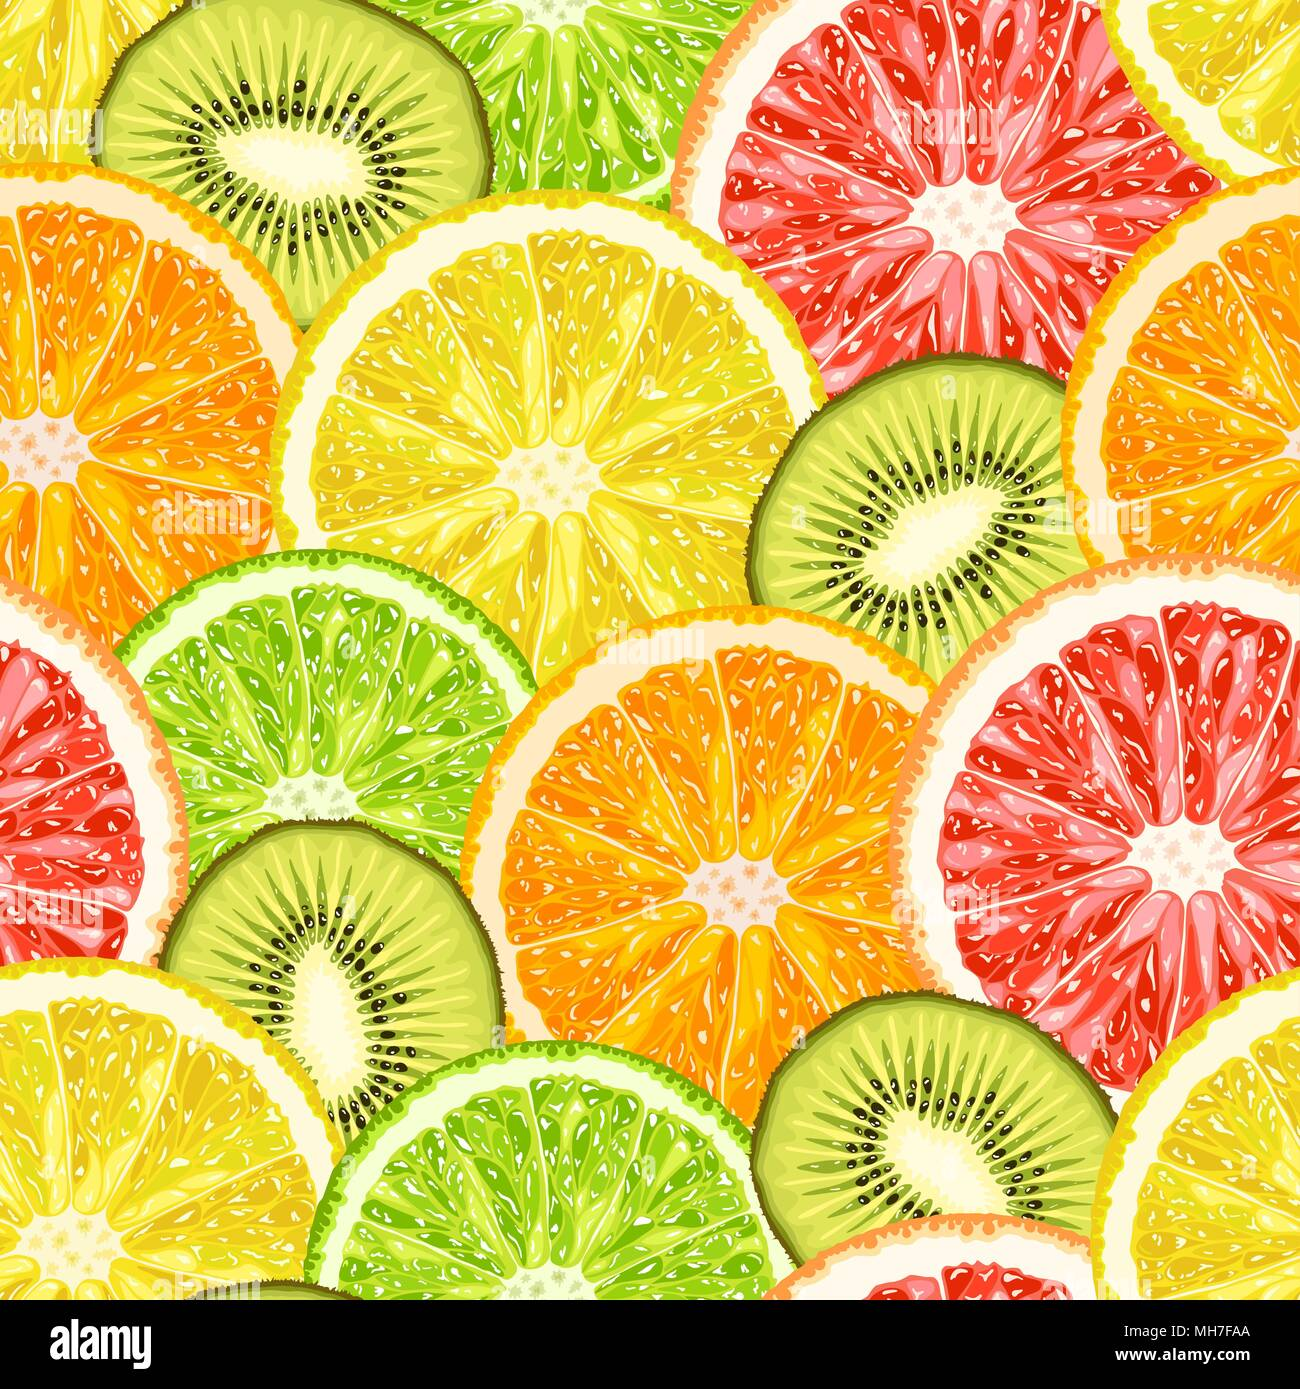 Vector seamless pattern from exotic tropical fruits slices. Lemon, grapefruit, orange, lime and kiwi slices background - Stock Image